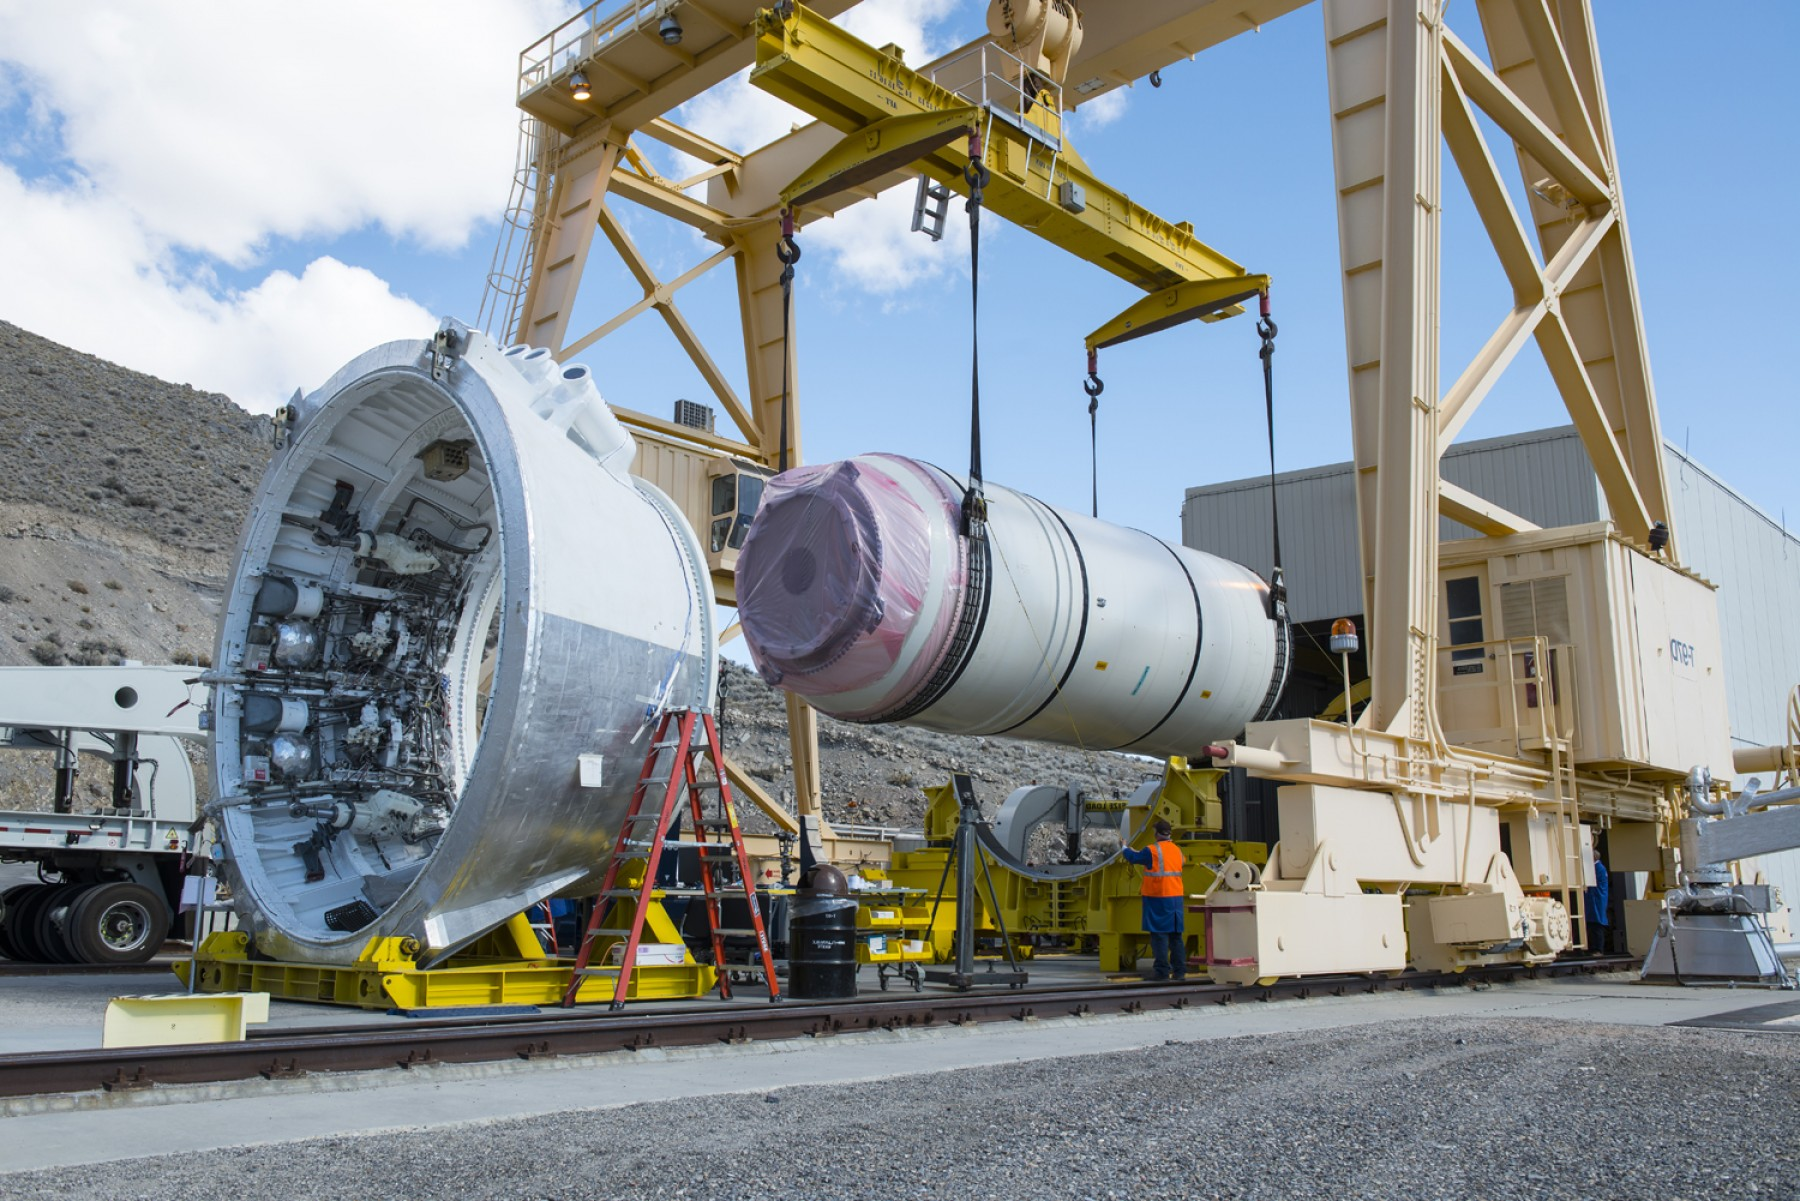 SRB Thrust Vector Control System: Sls Solid Rocket Booster To Be Fired Up For Final Qualification Test